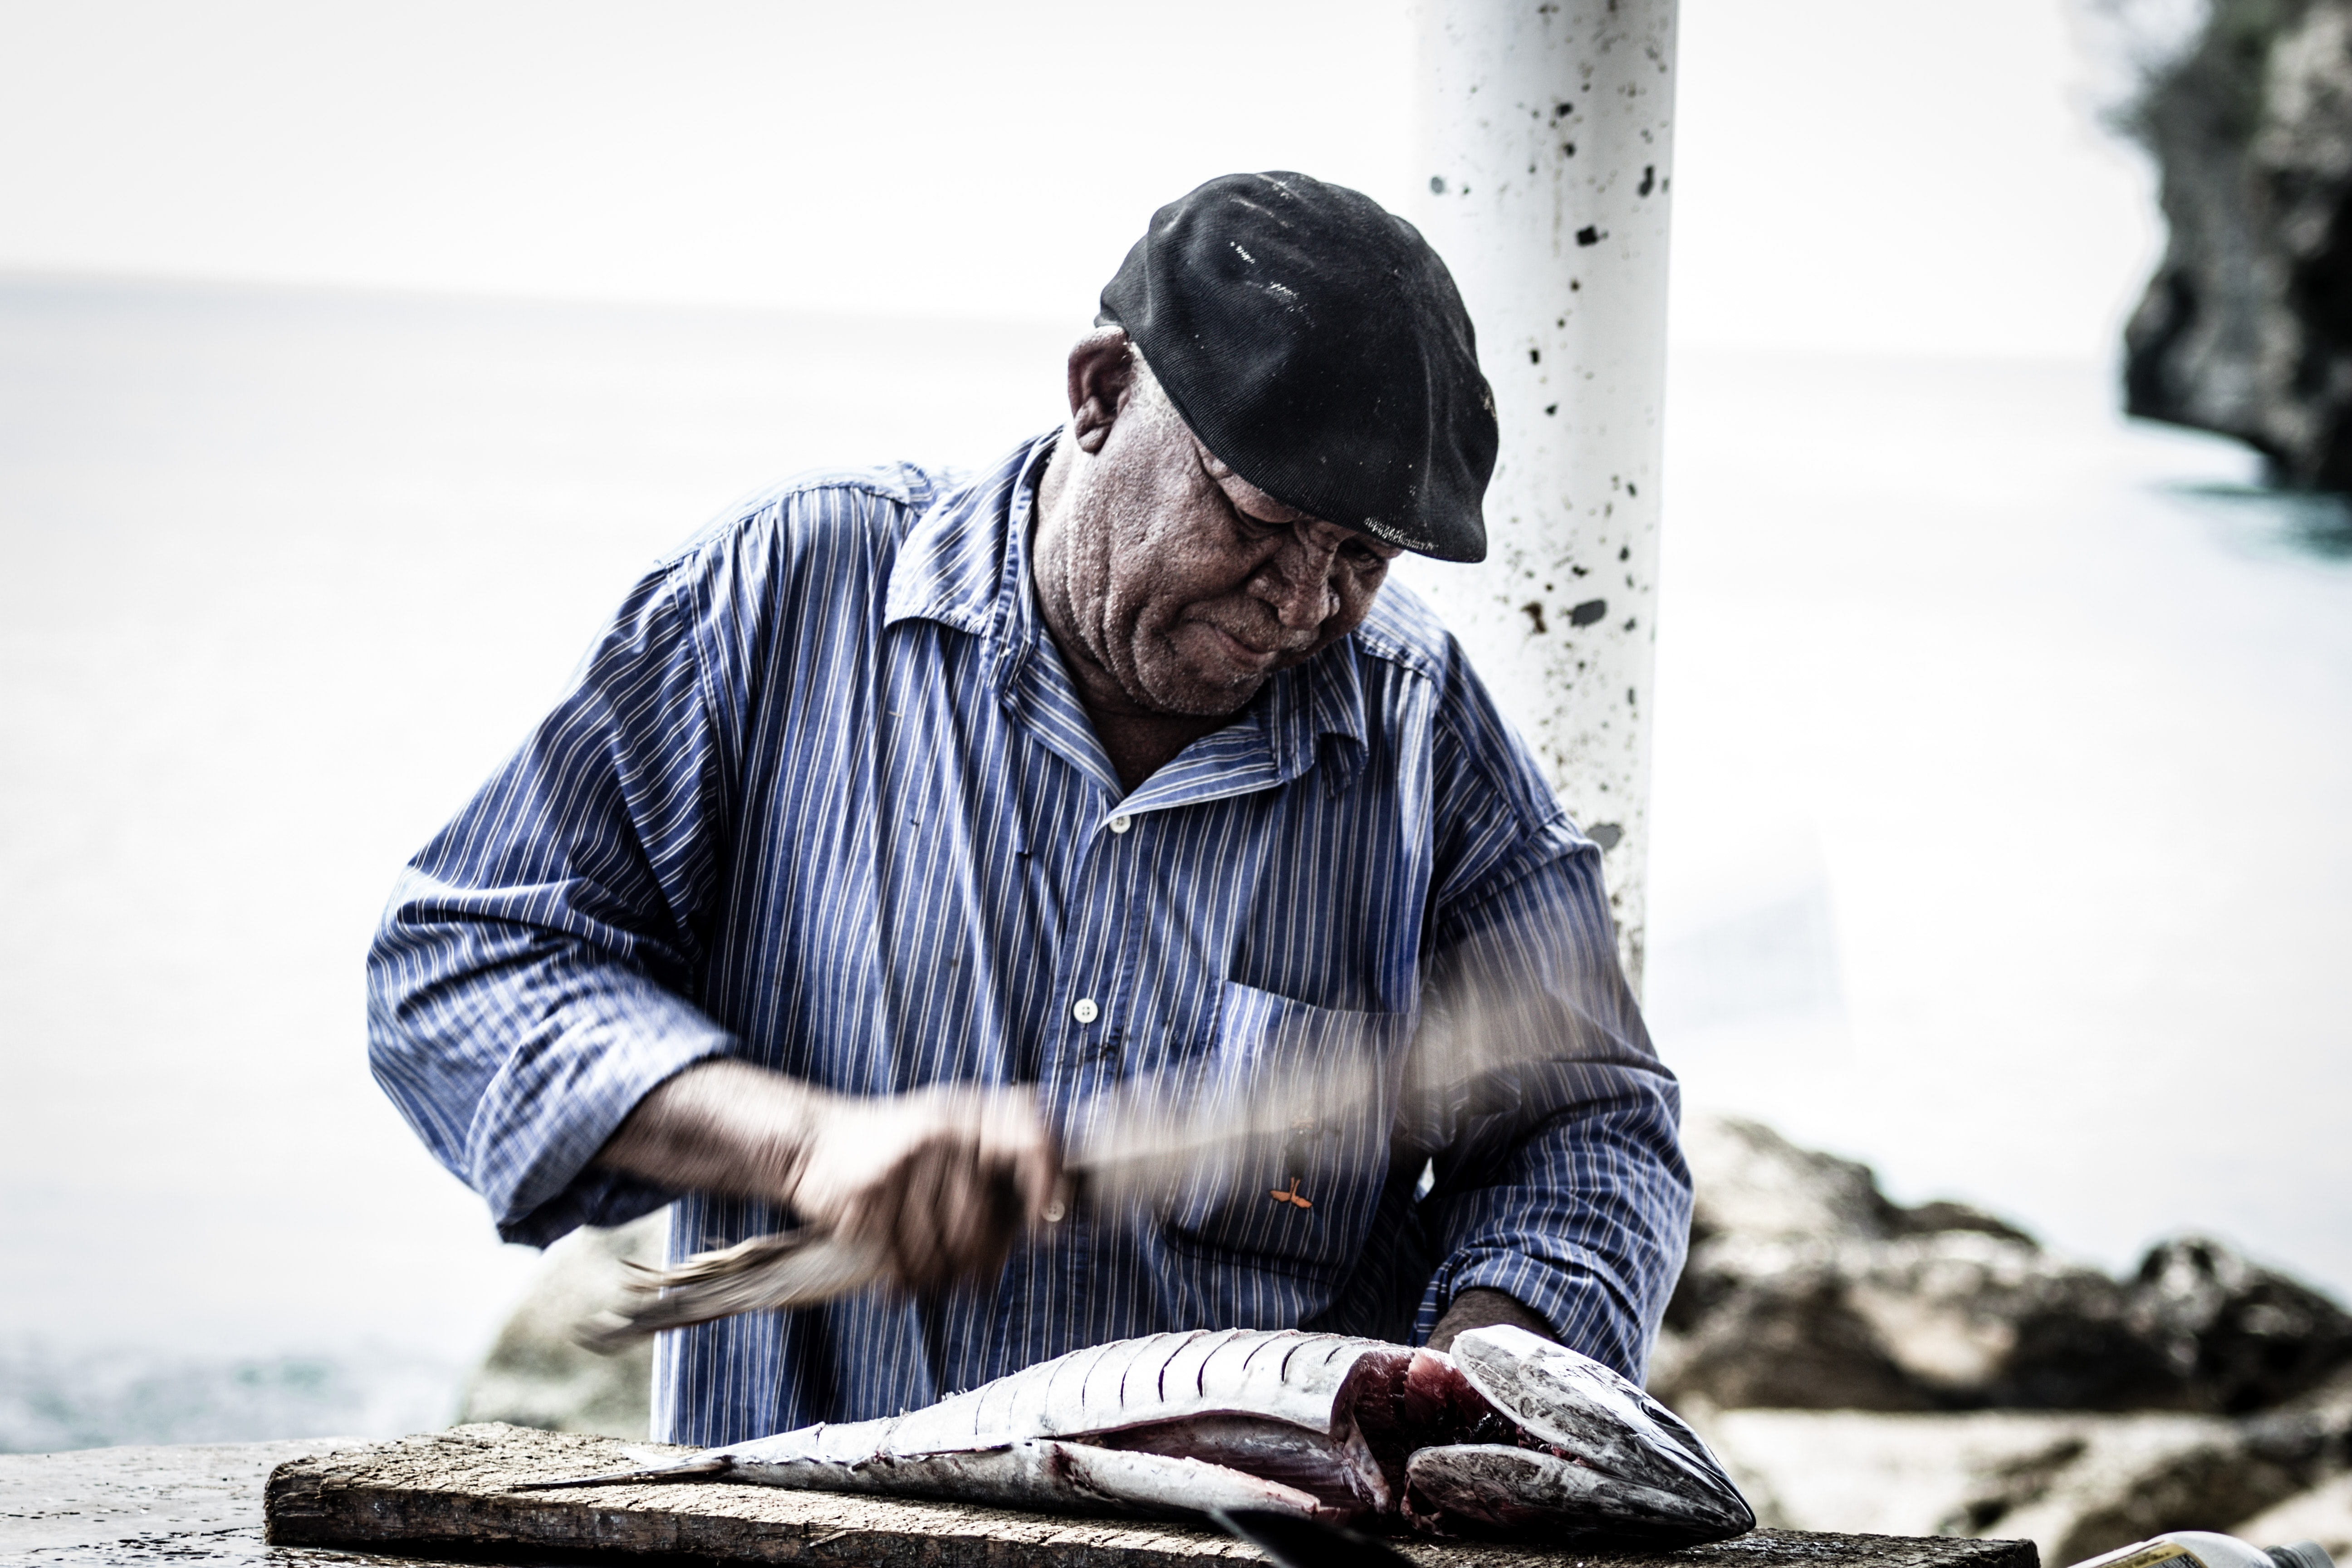 man cutting raw fish using knife